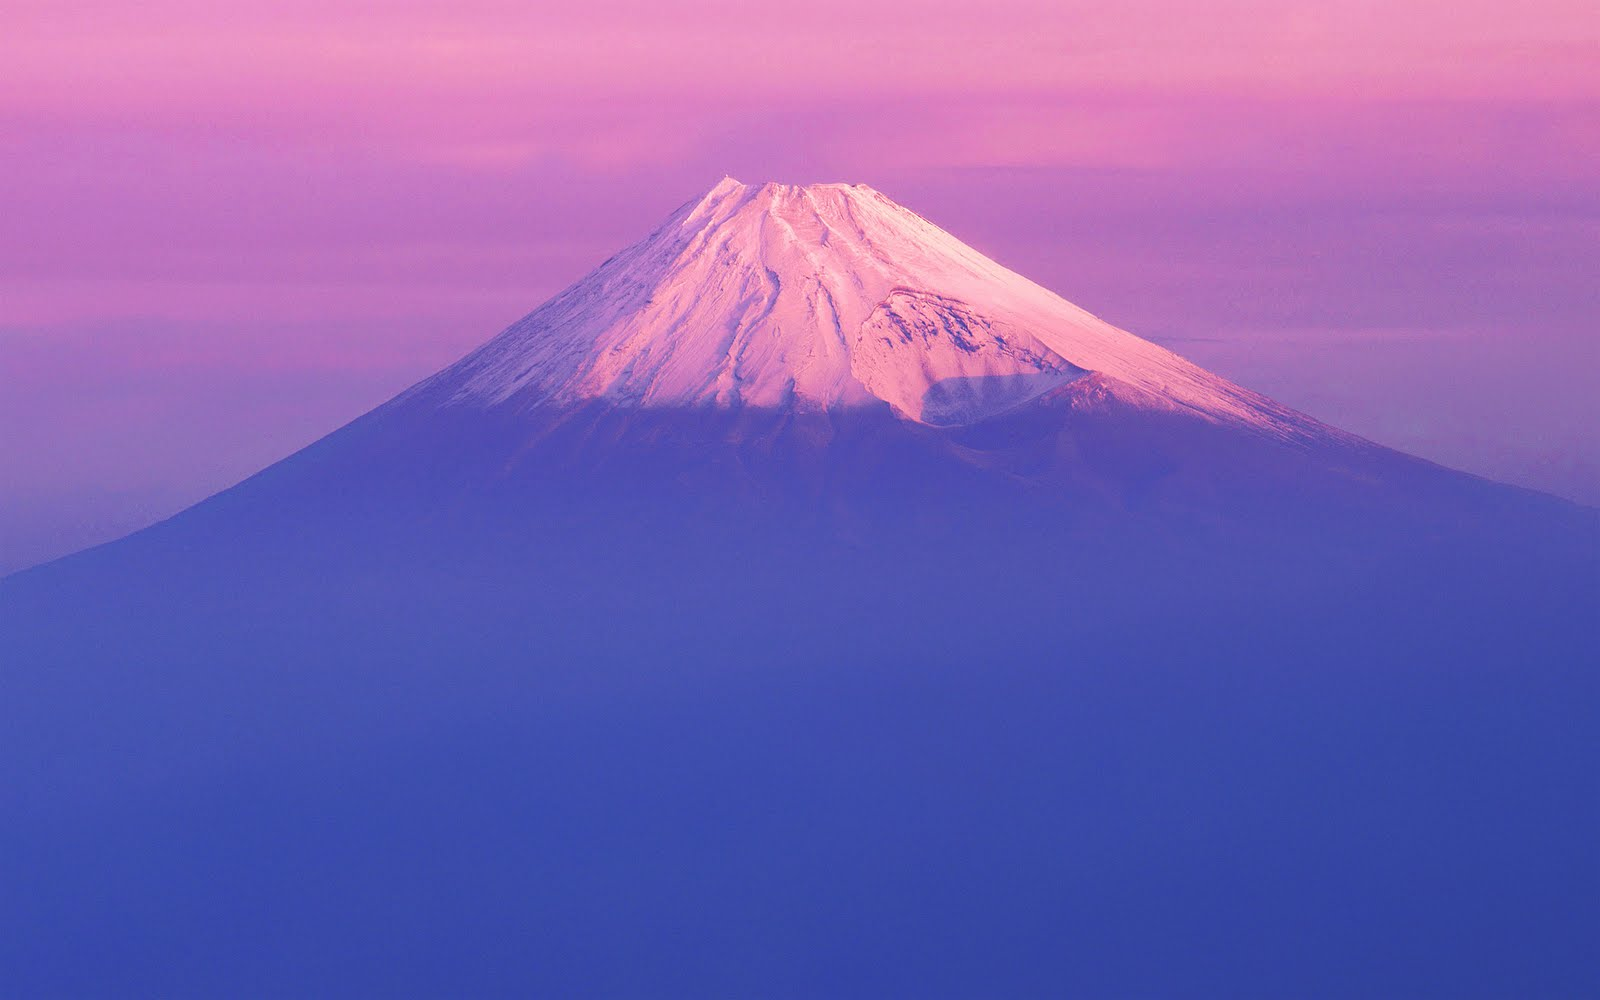 haulin past mt fuji and the apple desktop wallpaper of mount fuji from 1600x1000